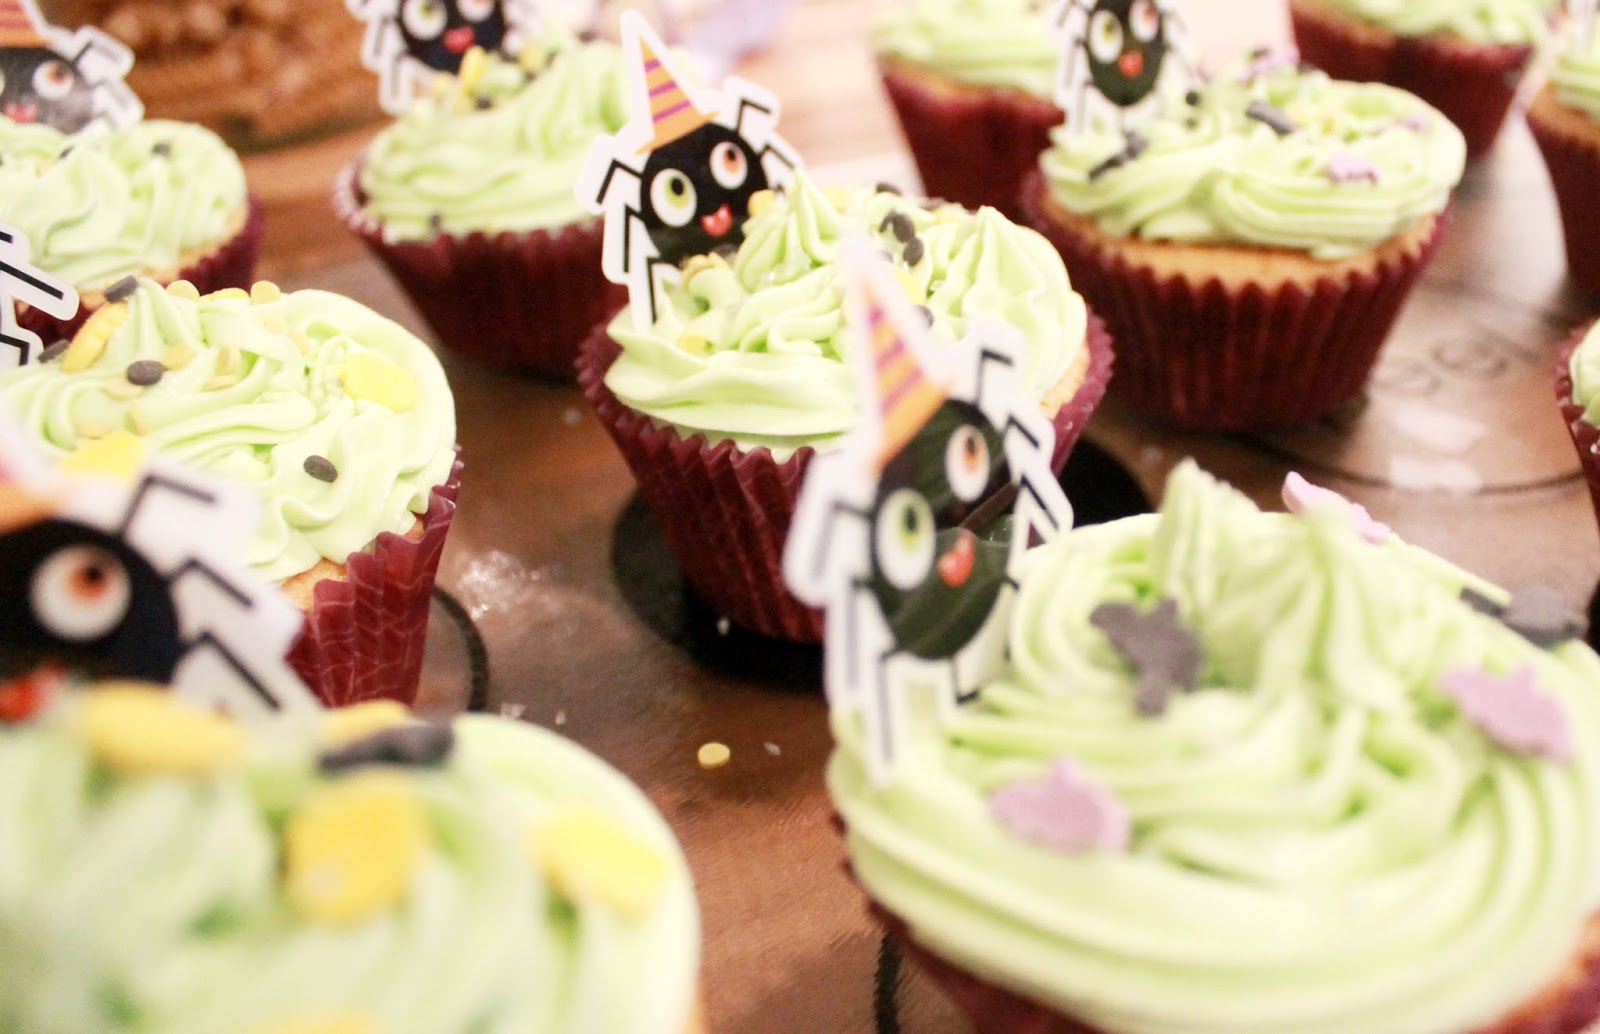 Cupcake Decorations Asda : Halloween Cupcakes. - From Rachael Claire